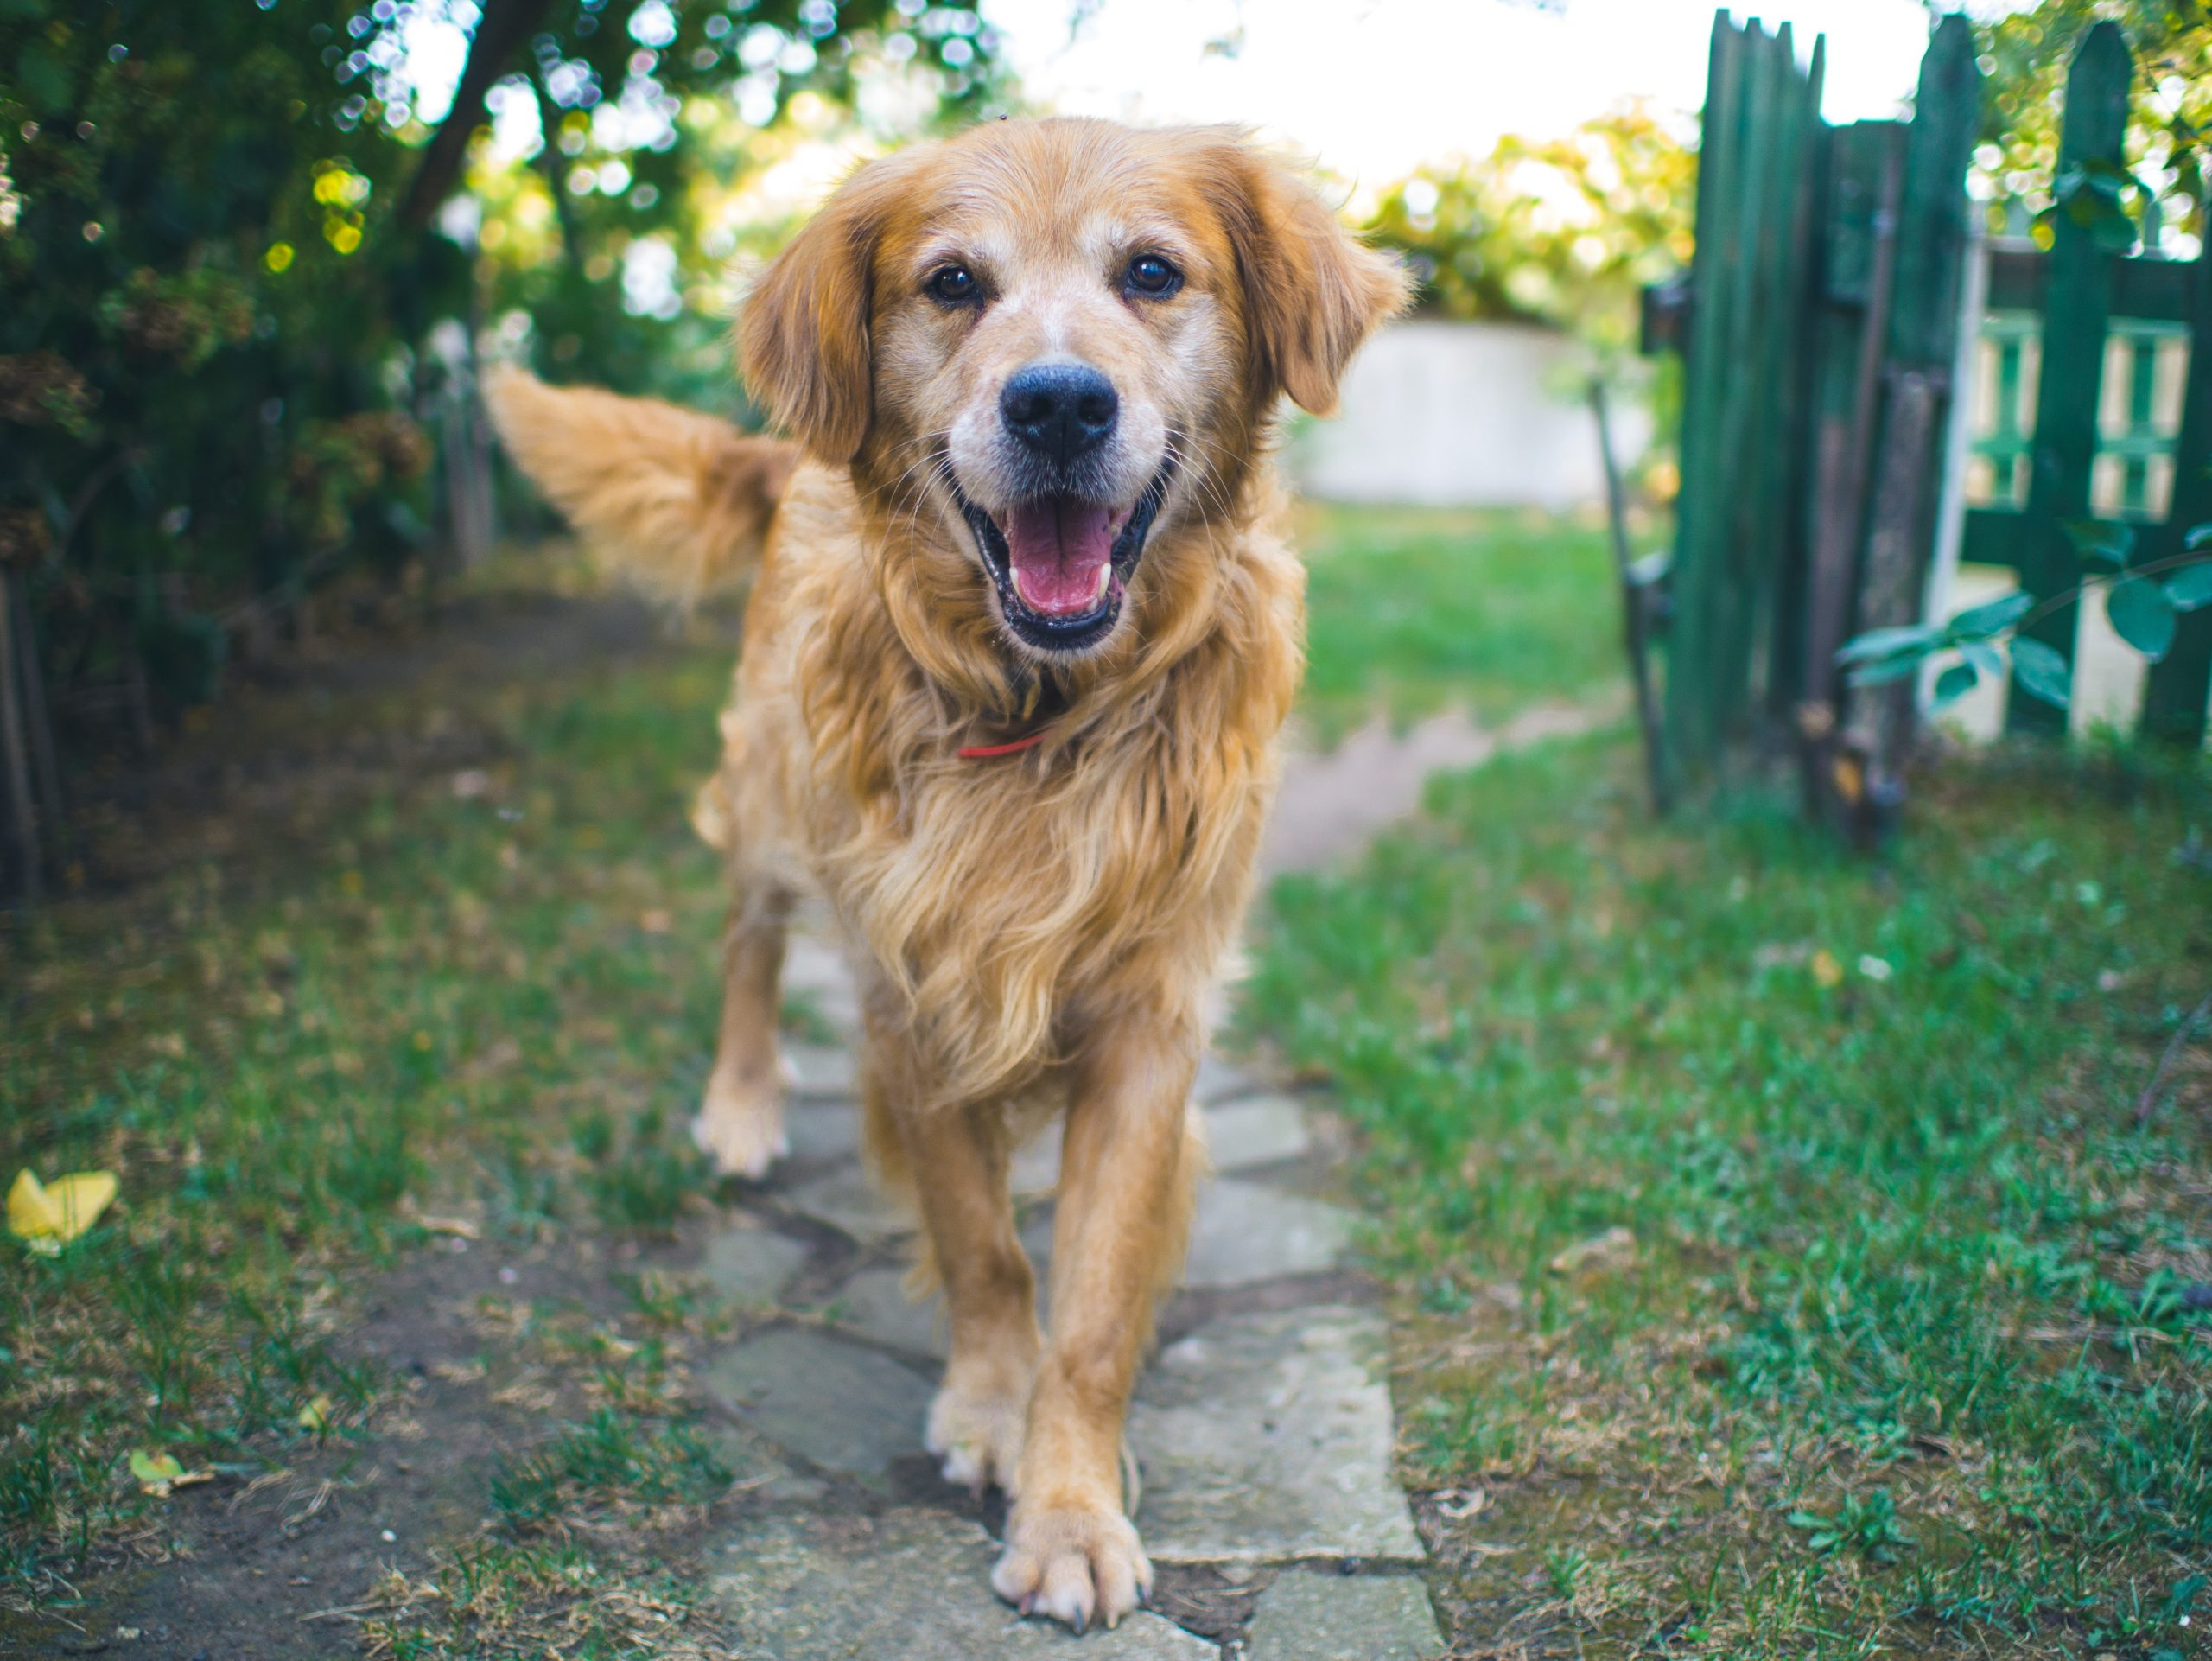 Dogs Wag Their Tail Differently To Convey Different Messages